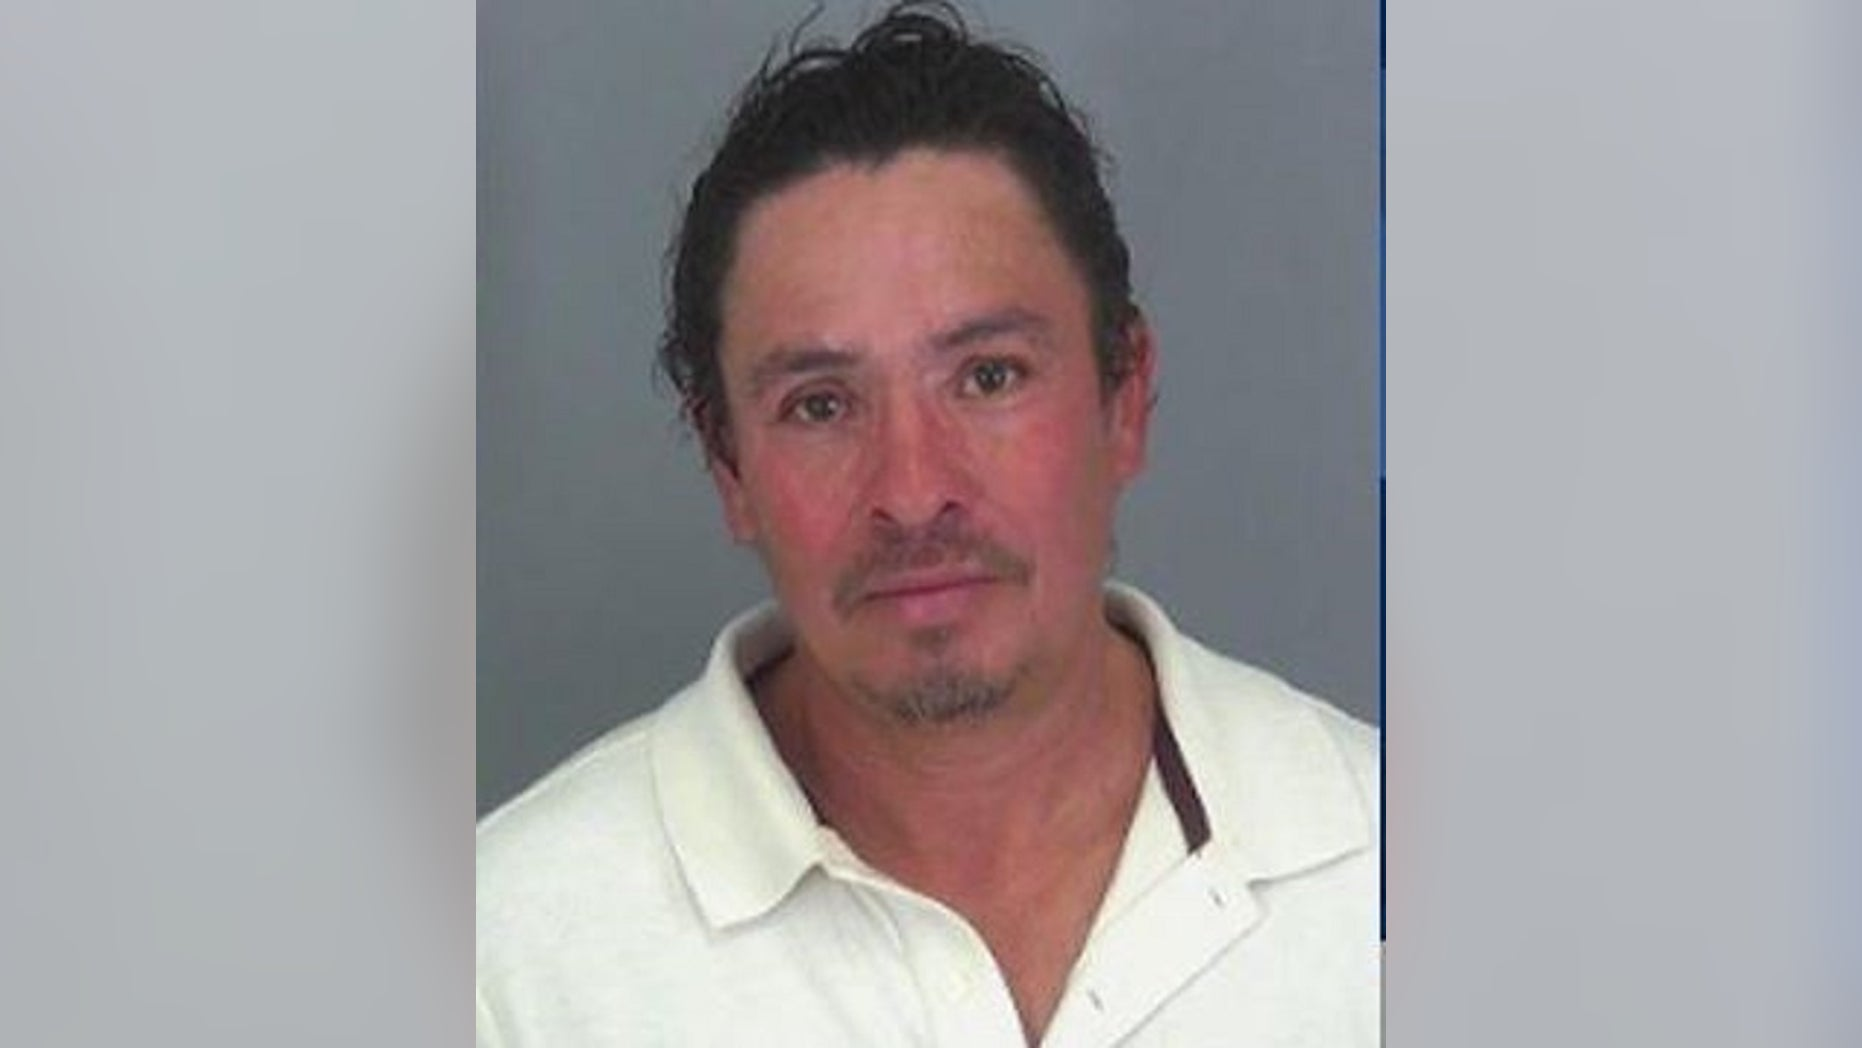 Efren Mencia-Ramirezwas charged with DUI, open container, no proof of insurance and no valid S.C. driver's license, authorities say.